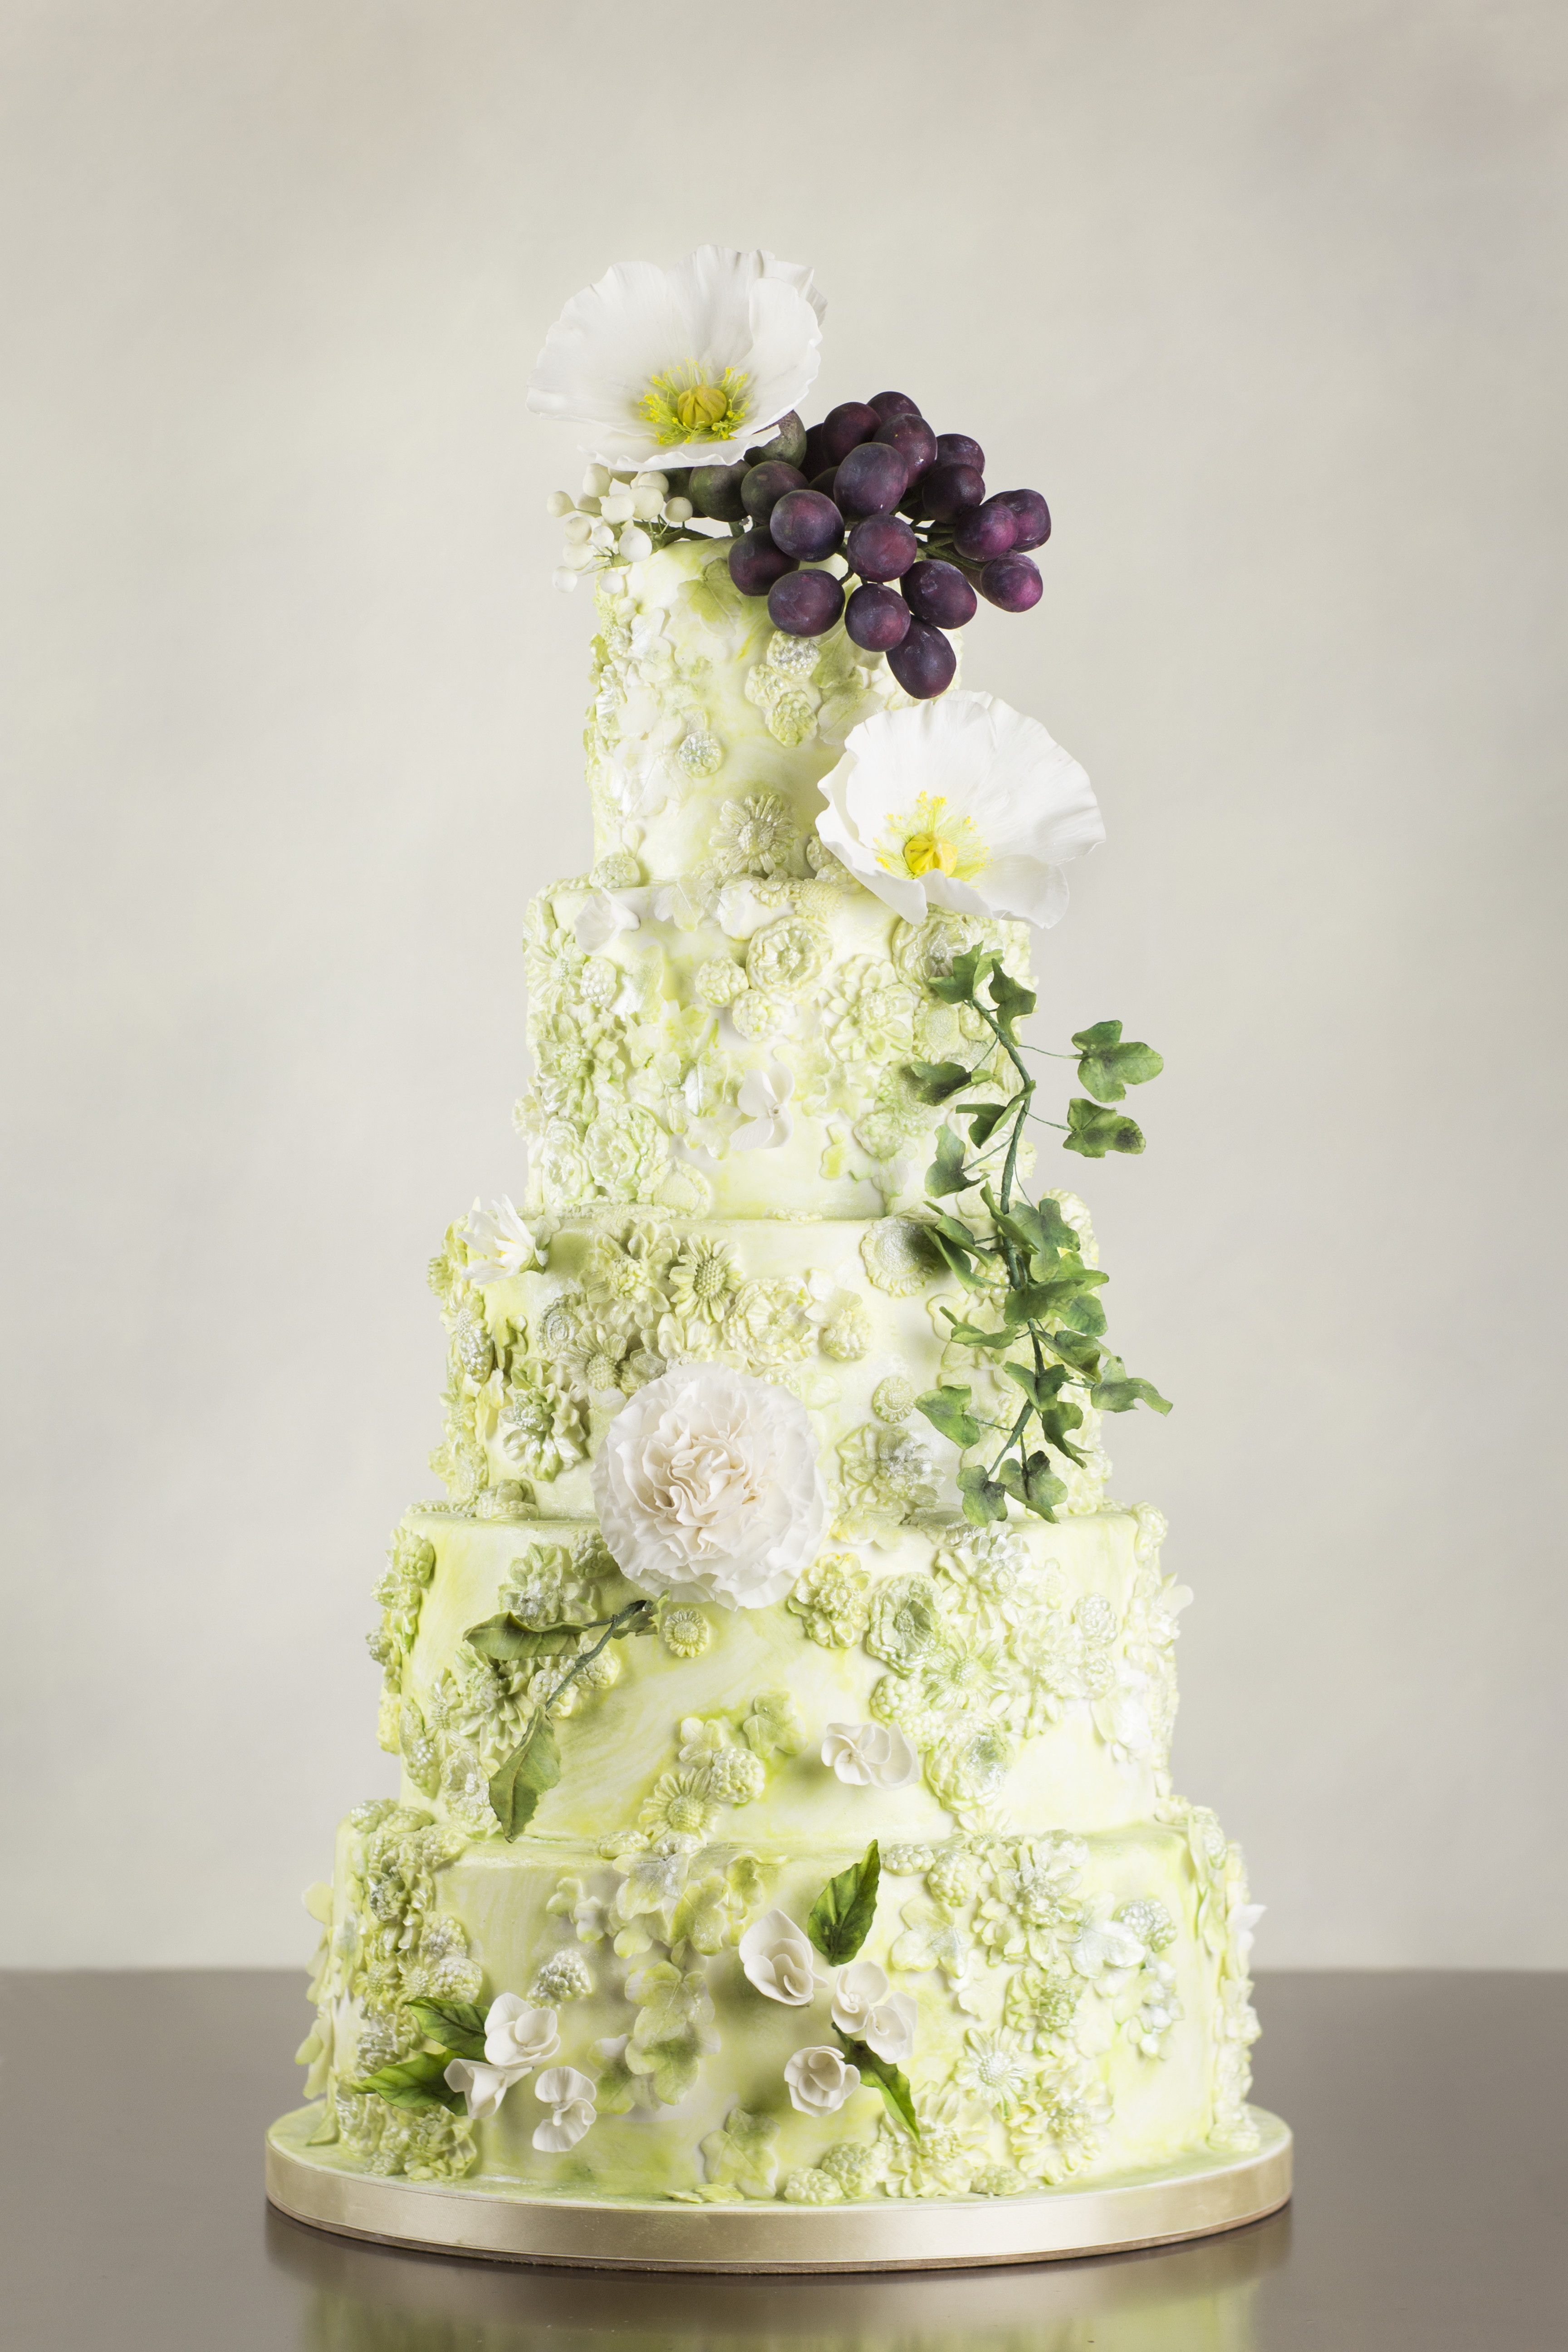 Yellow with white bas relief textured wedding cake